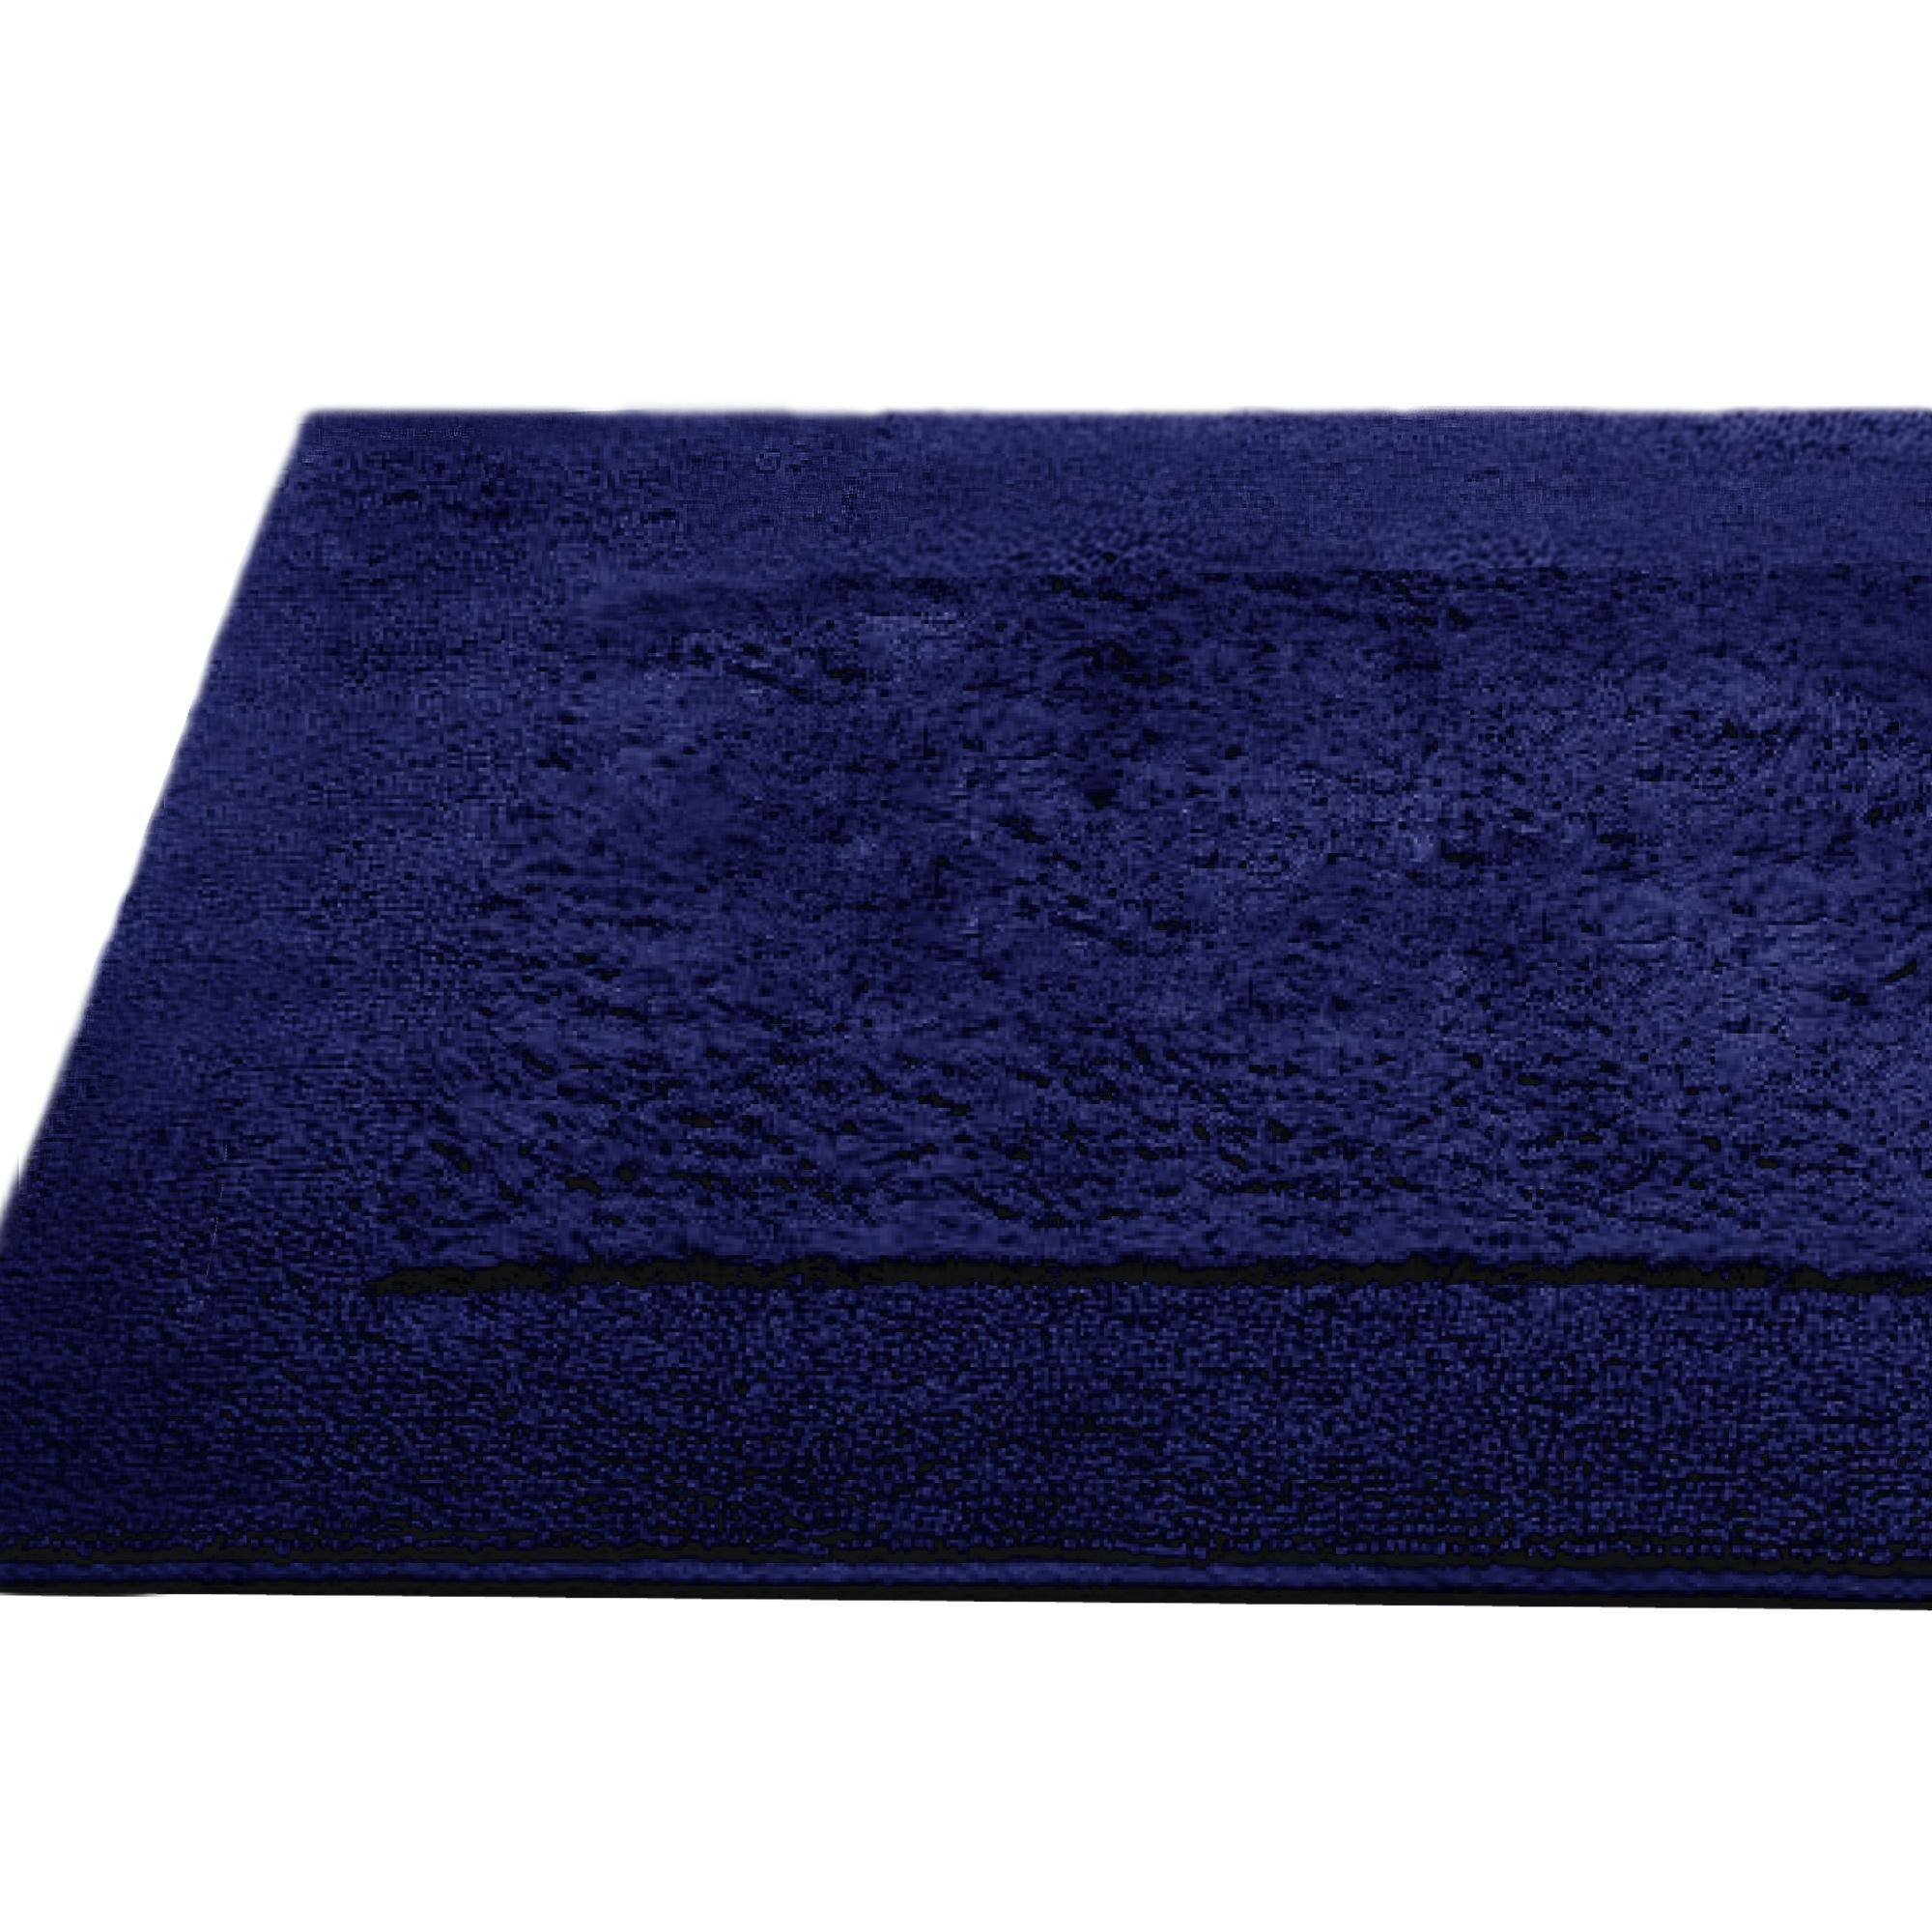 carrelage design tapis de bain bleu moderne design pour carrelage de sol et rev tement de tapis. Black Bedroom Furniture Sets. Home Design Ideas